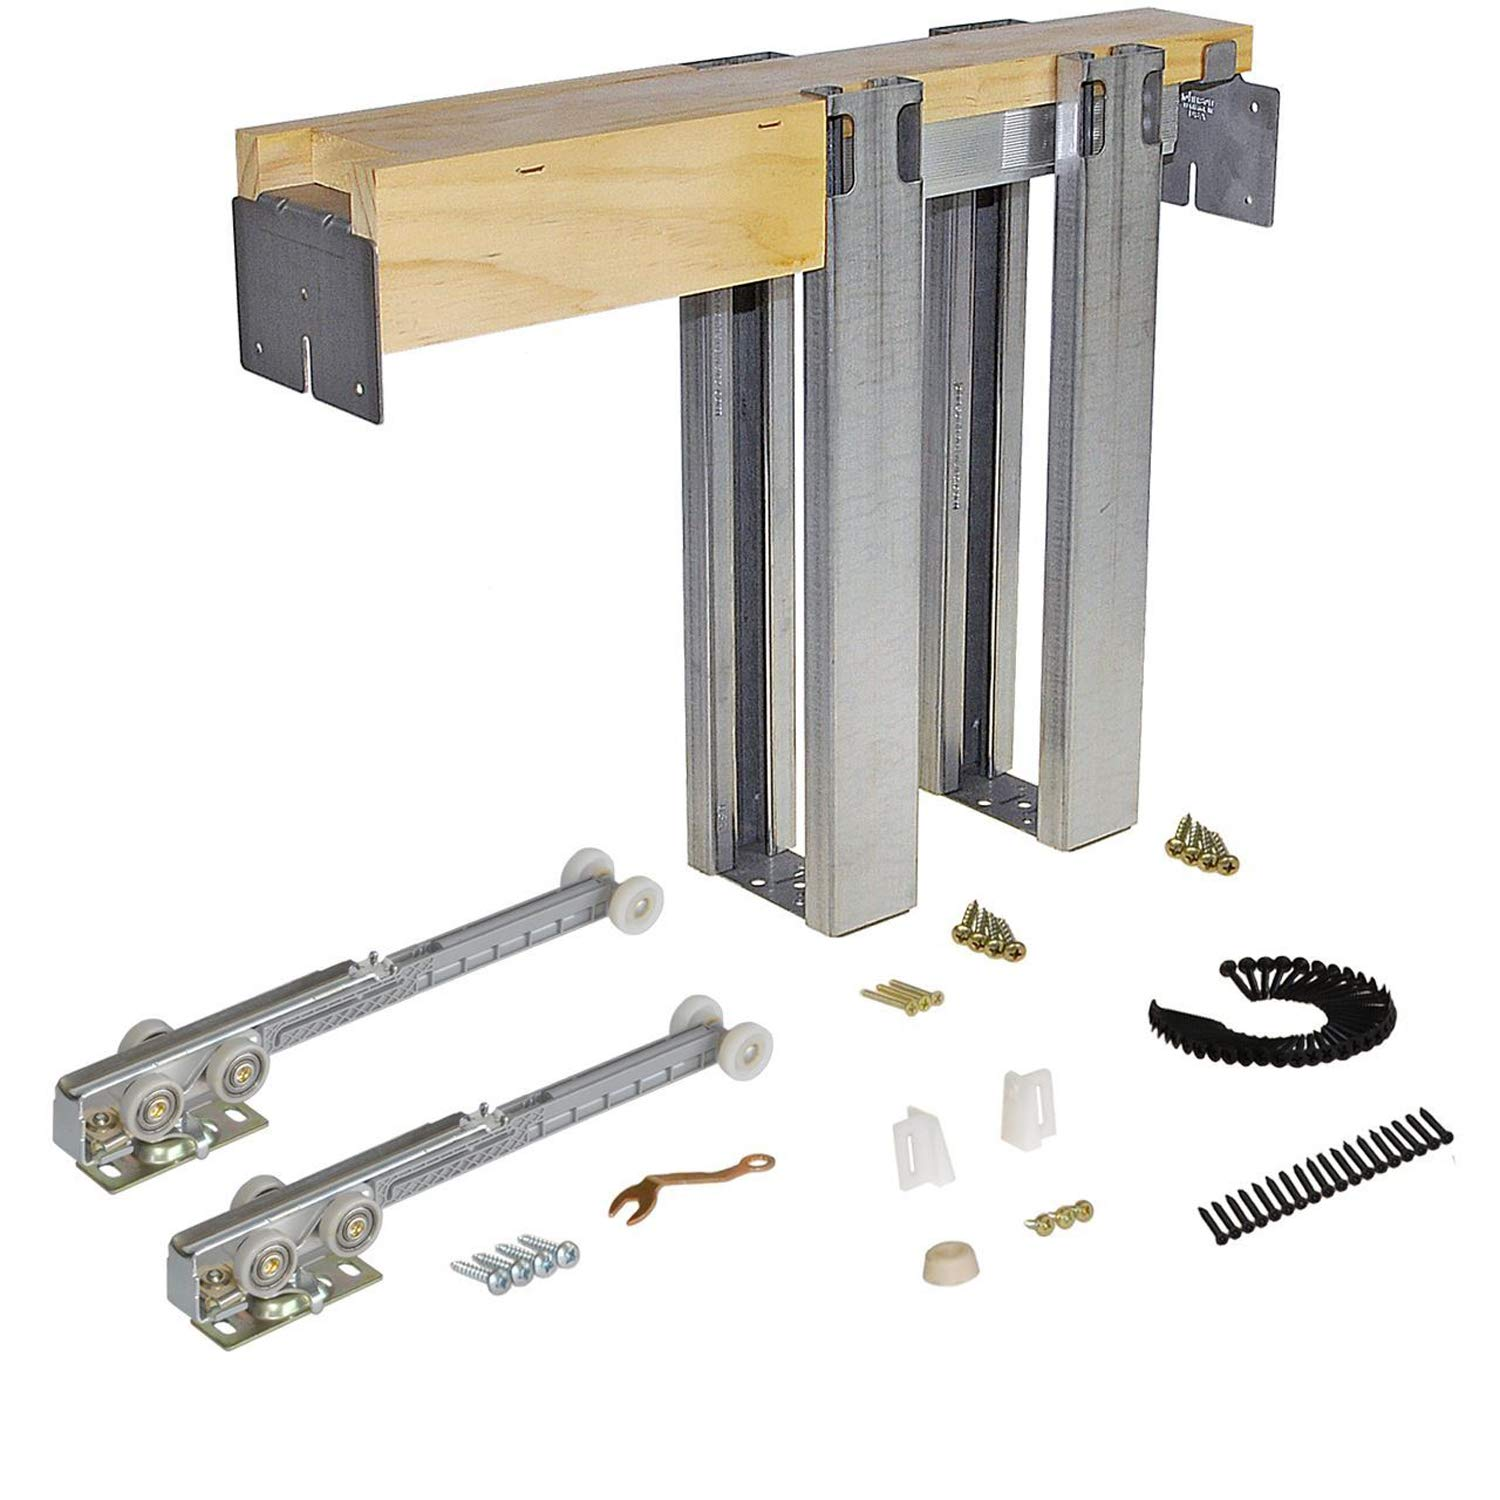 Johnson Hardware 1500 Soft Close Series Commercial Grade Pocket Door Frame for 2x4 Stud Wall (30 inch x 80 inch)